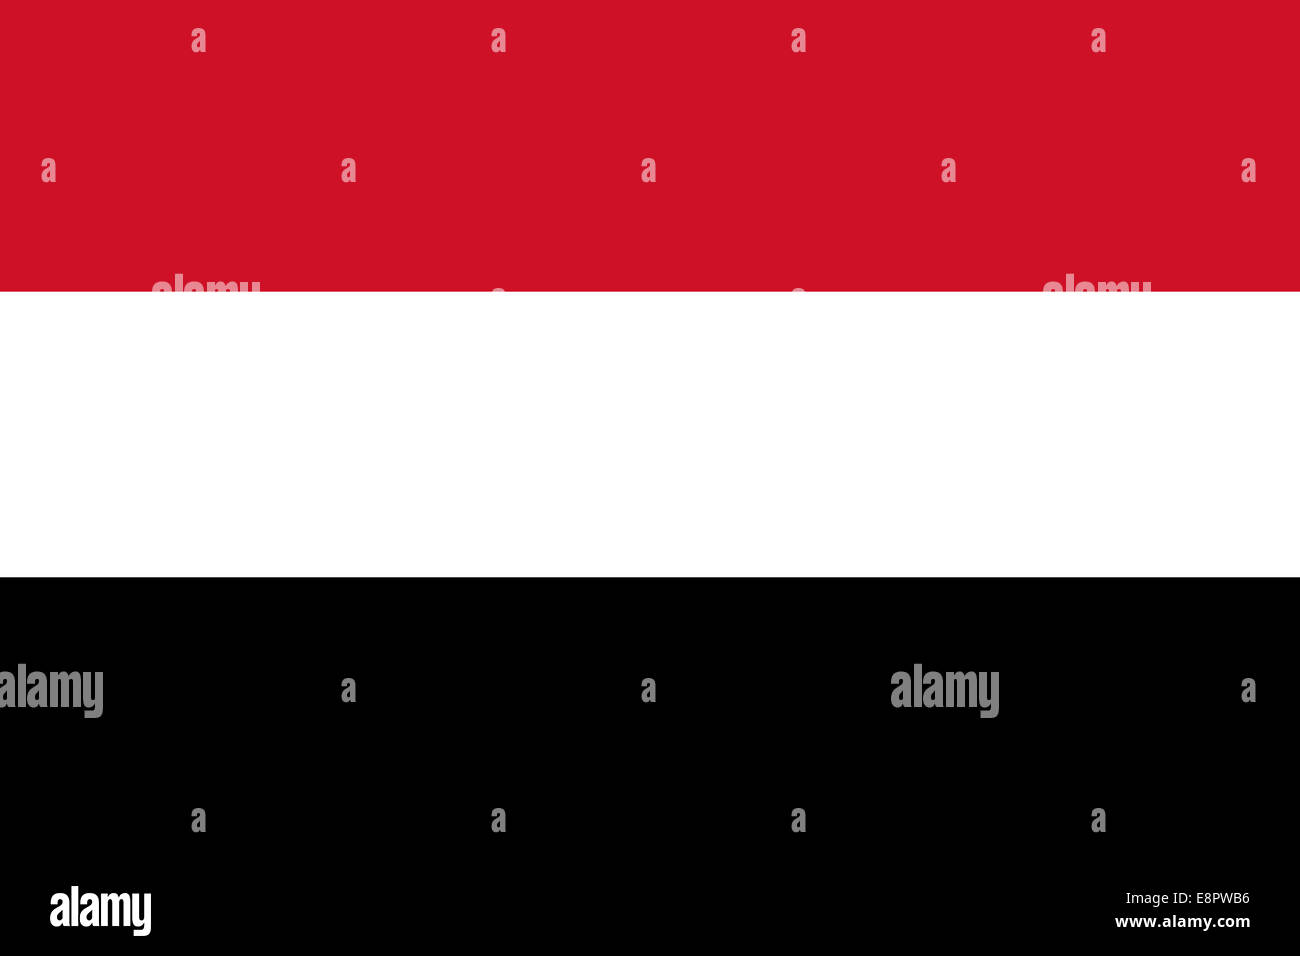 Flag of Yemen - Yemenite Flag (true RGB and proportions) - Stock Image